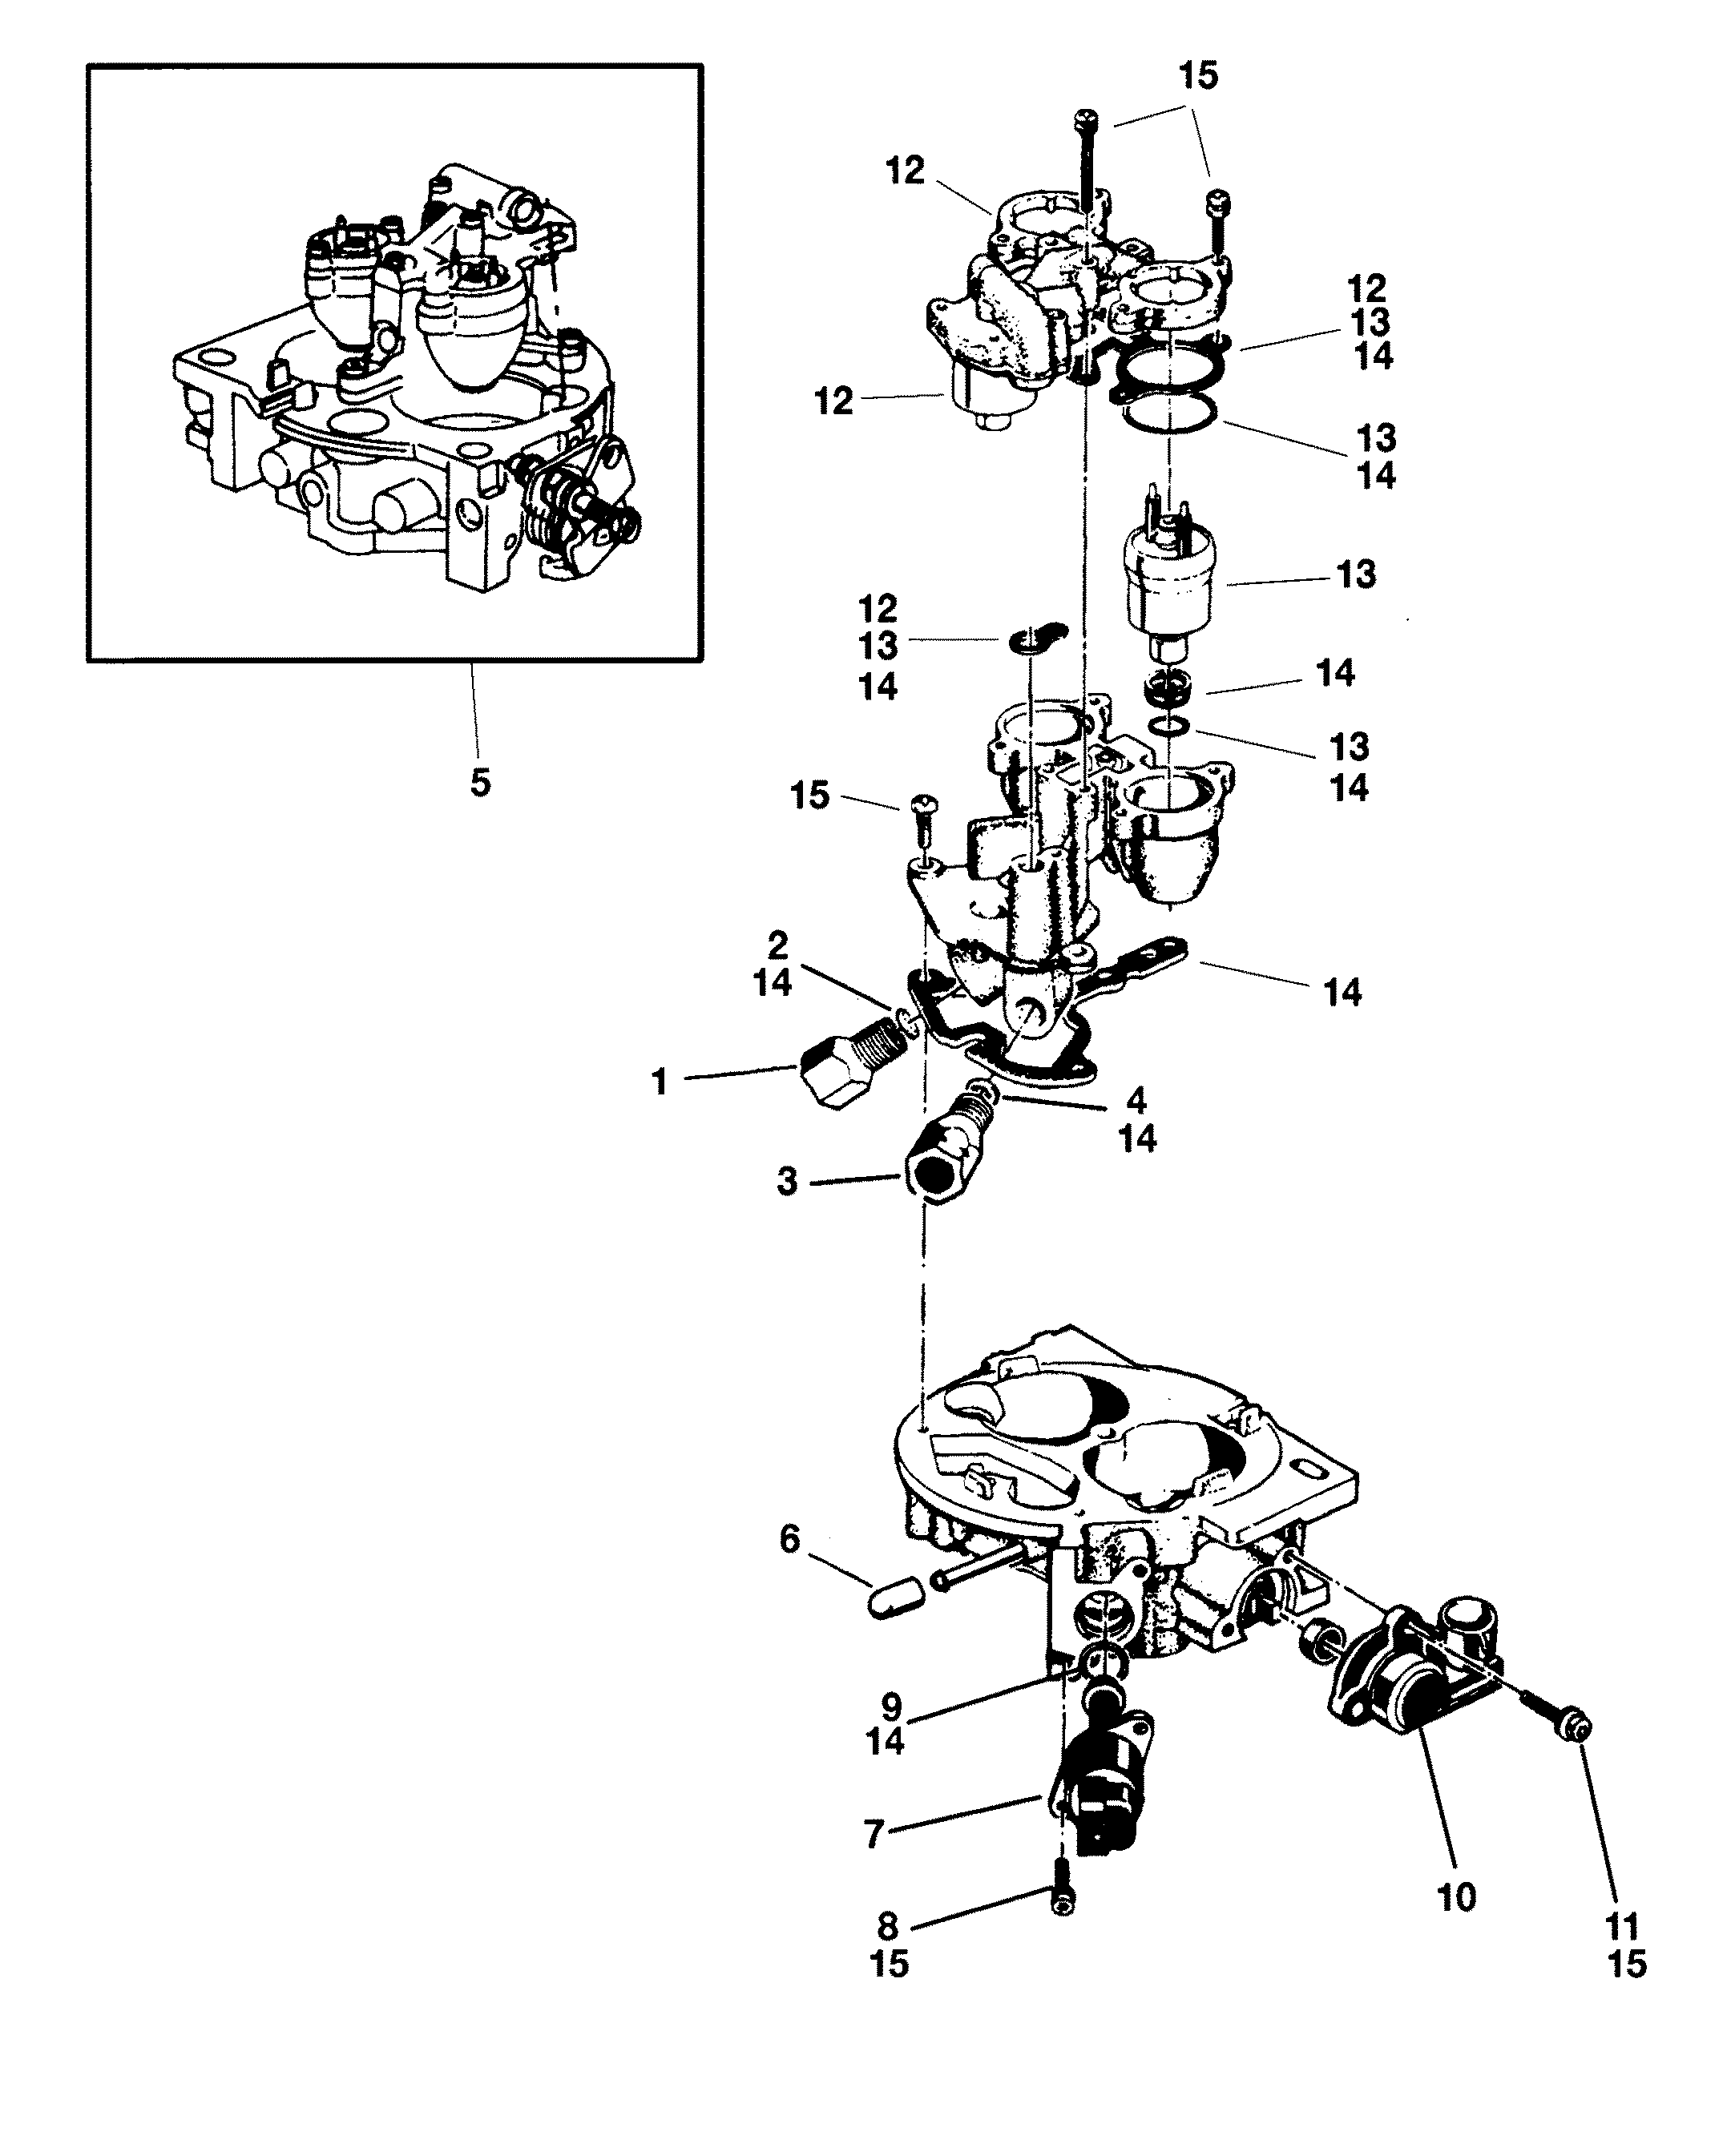 gm tbi fuel fittings  gm  free engine image for user